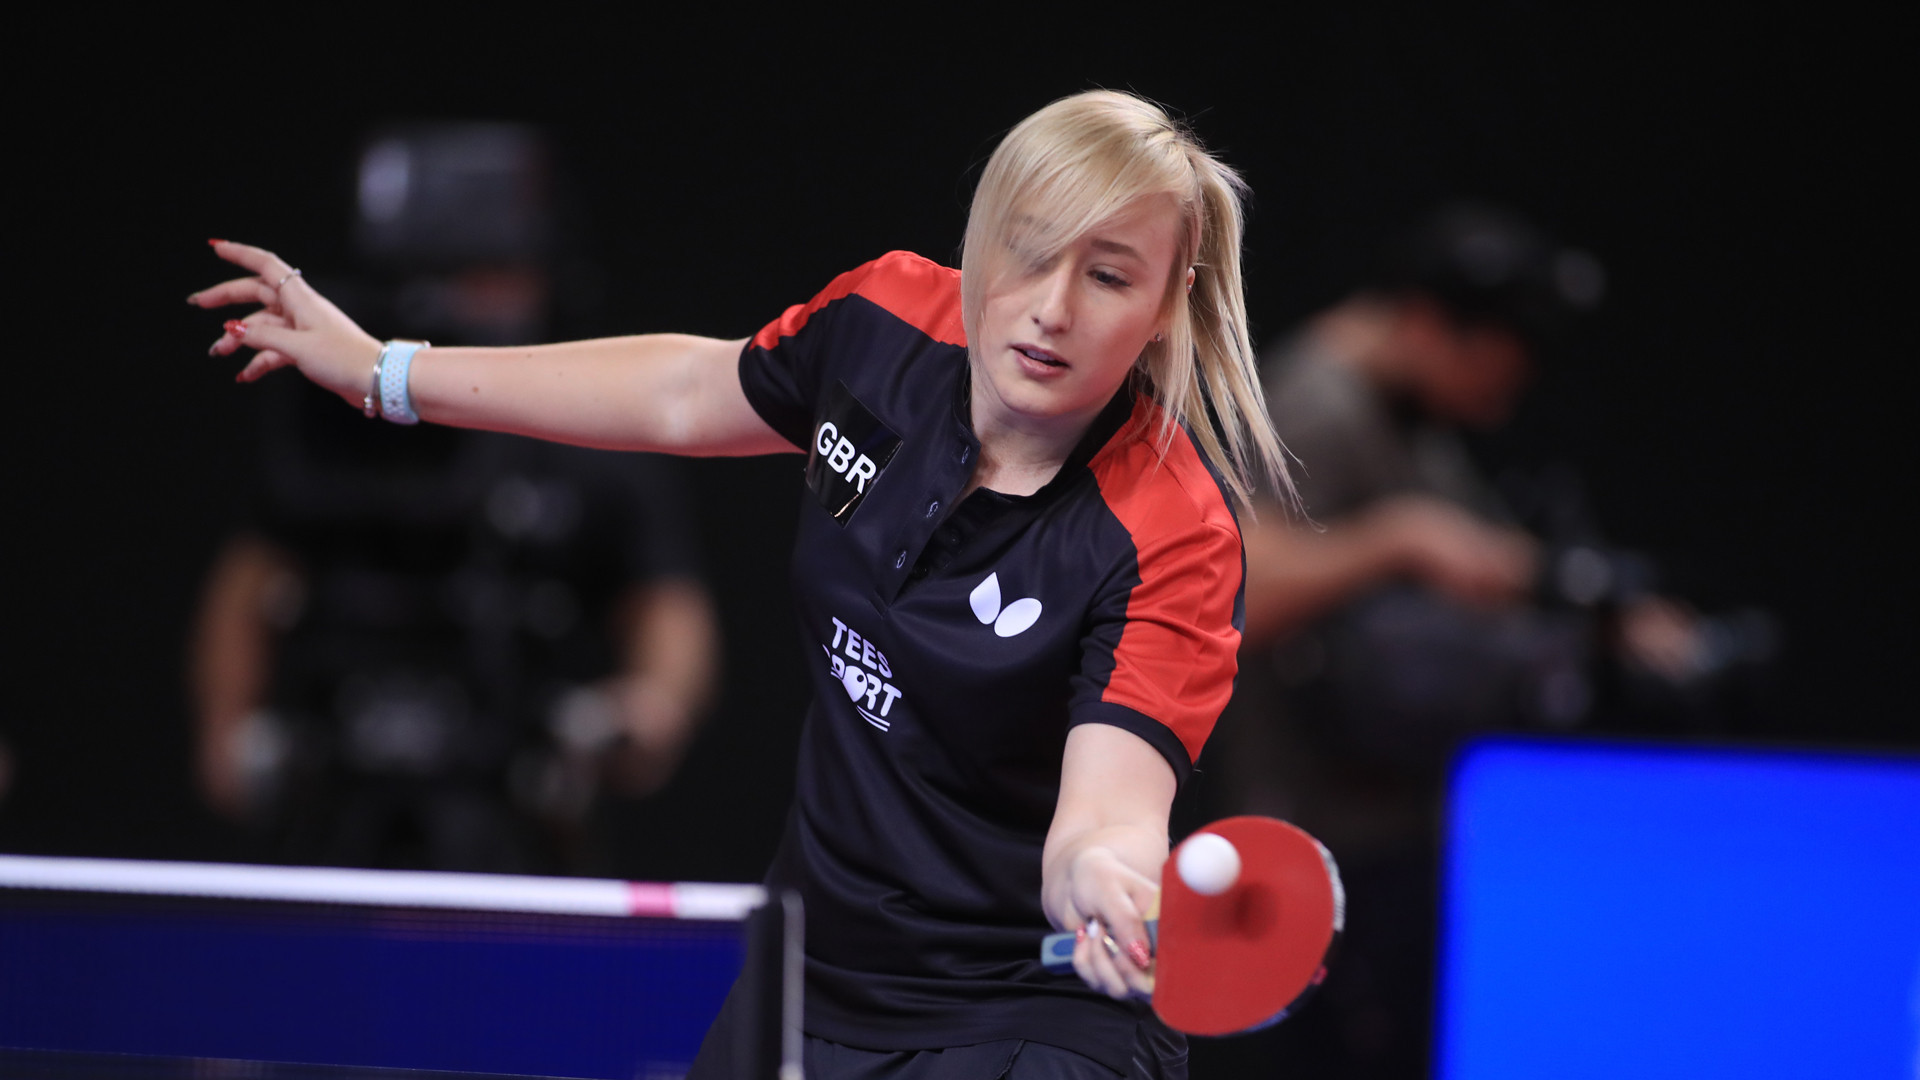 Britain's Charlotte Carey earned a surprise win on the opening day of the ITTF's European Olympic Singles Qualification Tournament in Portugal ©ITTF